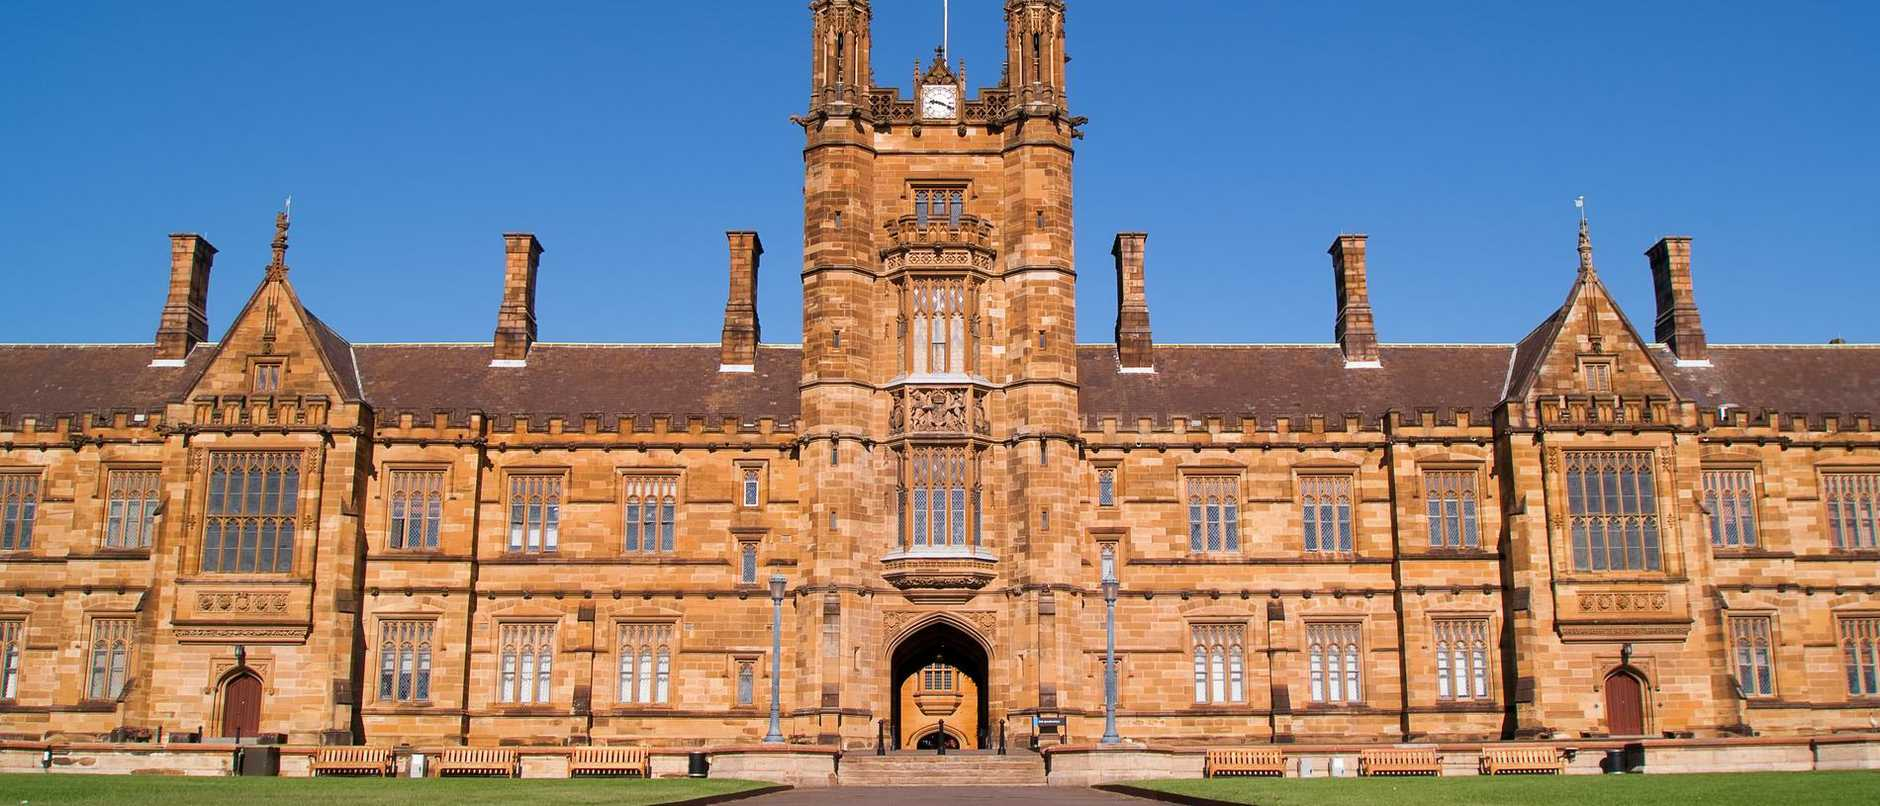 The University of Sydney has joined UNSW in seeking voluntary redundancies, saying cost cutting, including a hiring freeze, won't be sustainable in 2021.